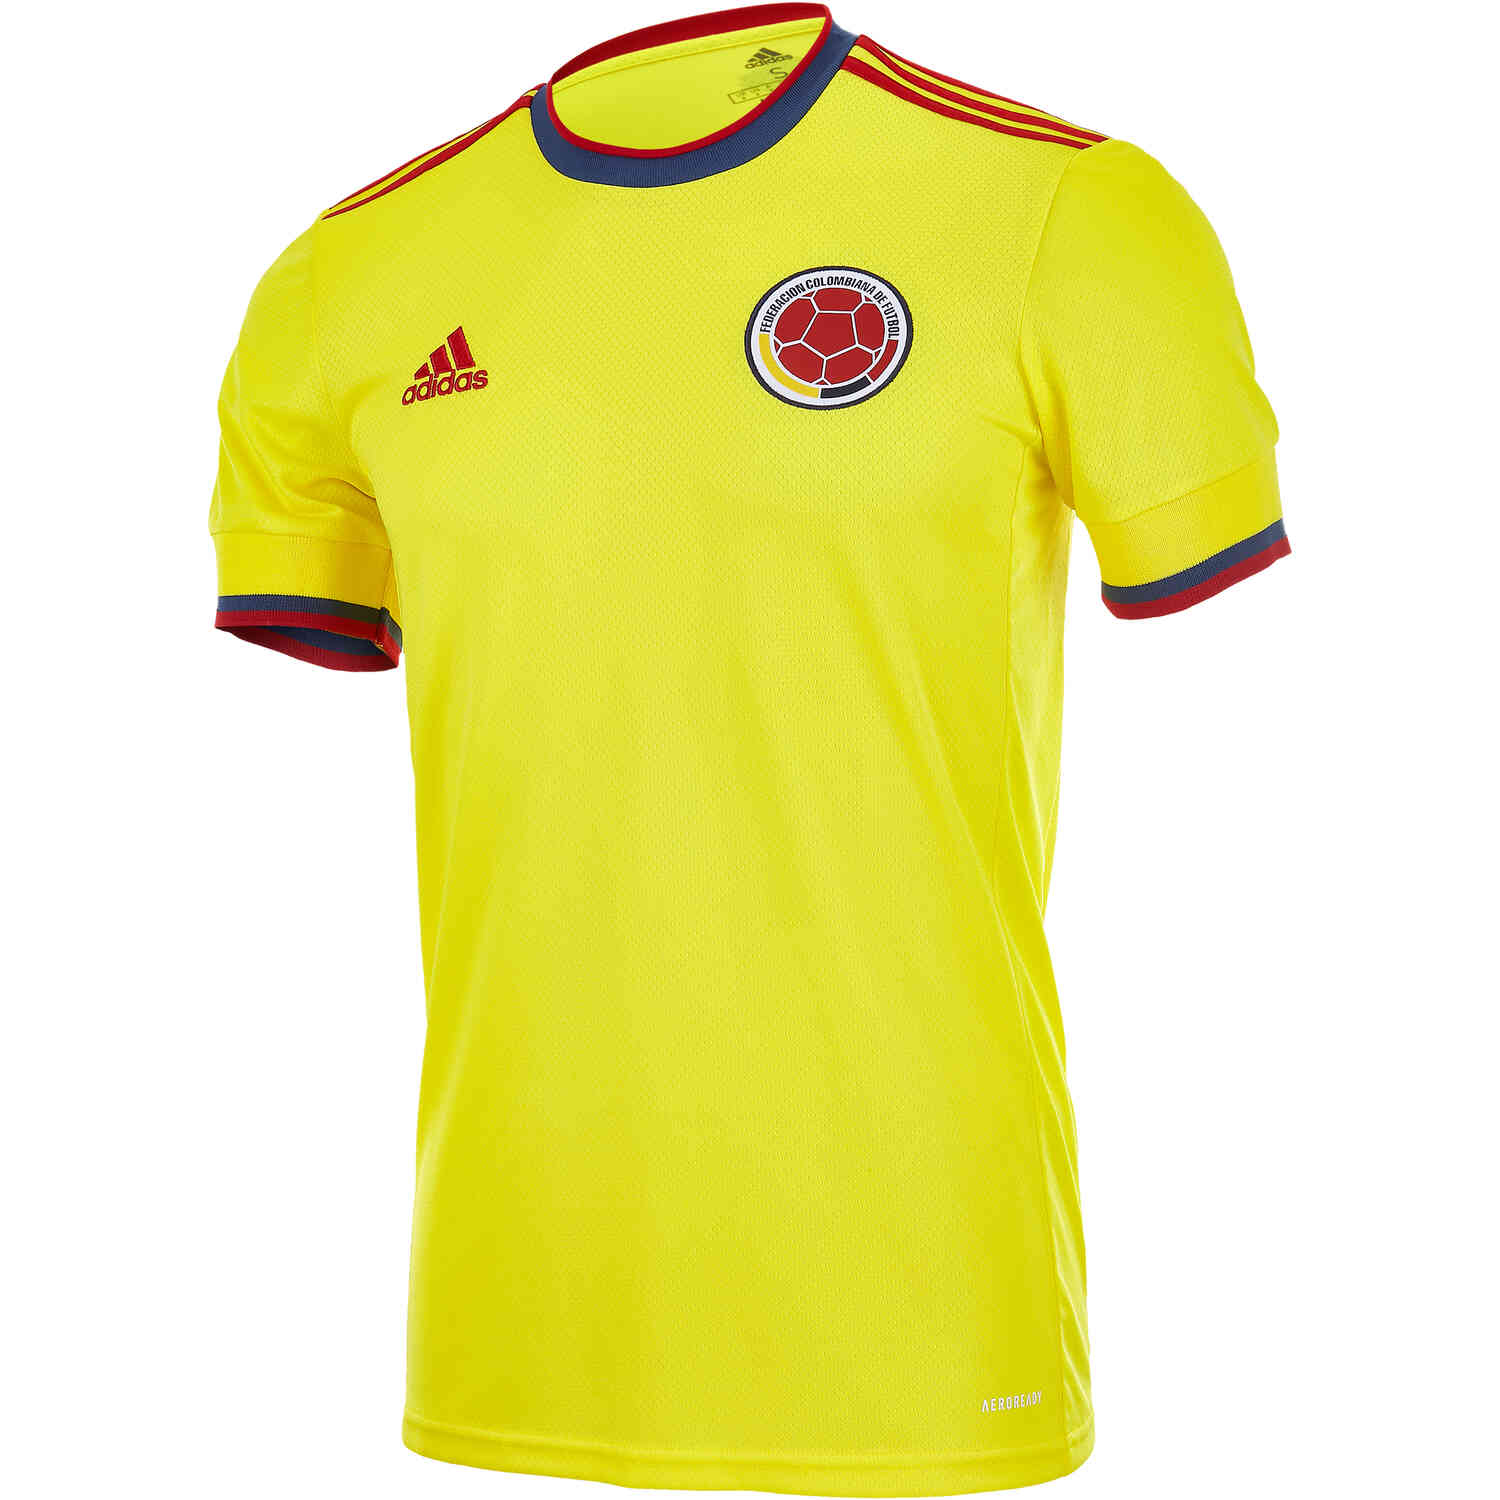 2021 adidas Colombia Home Jersey - SoccerPro